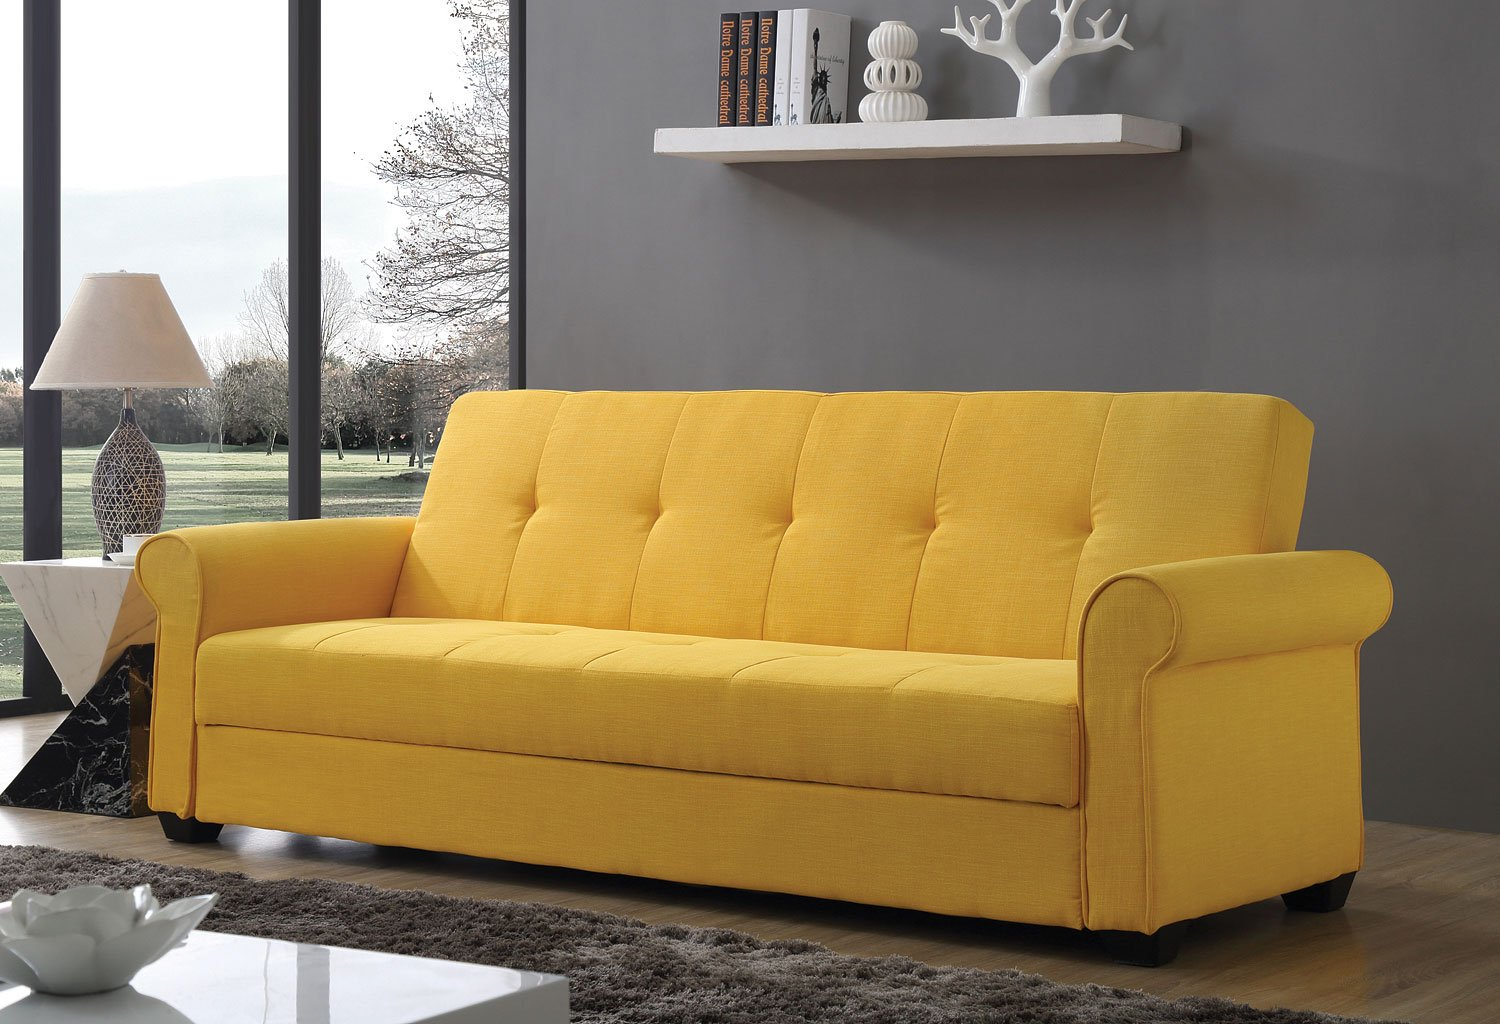 G155 Convertible Sofa Bed Yellow Futons Living Room